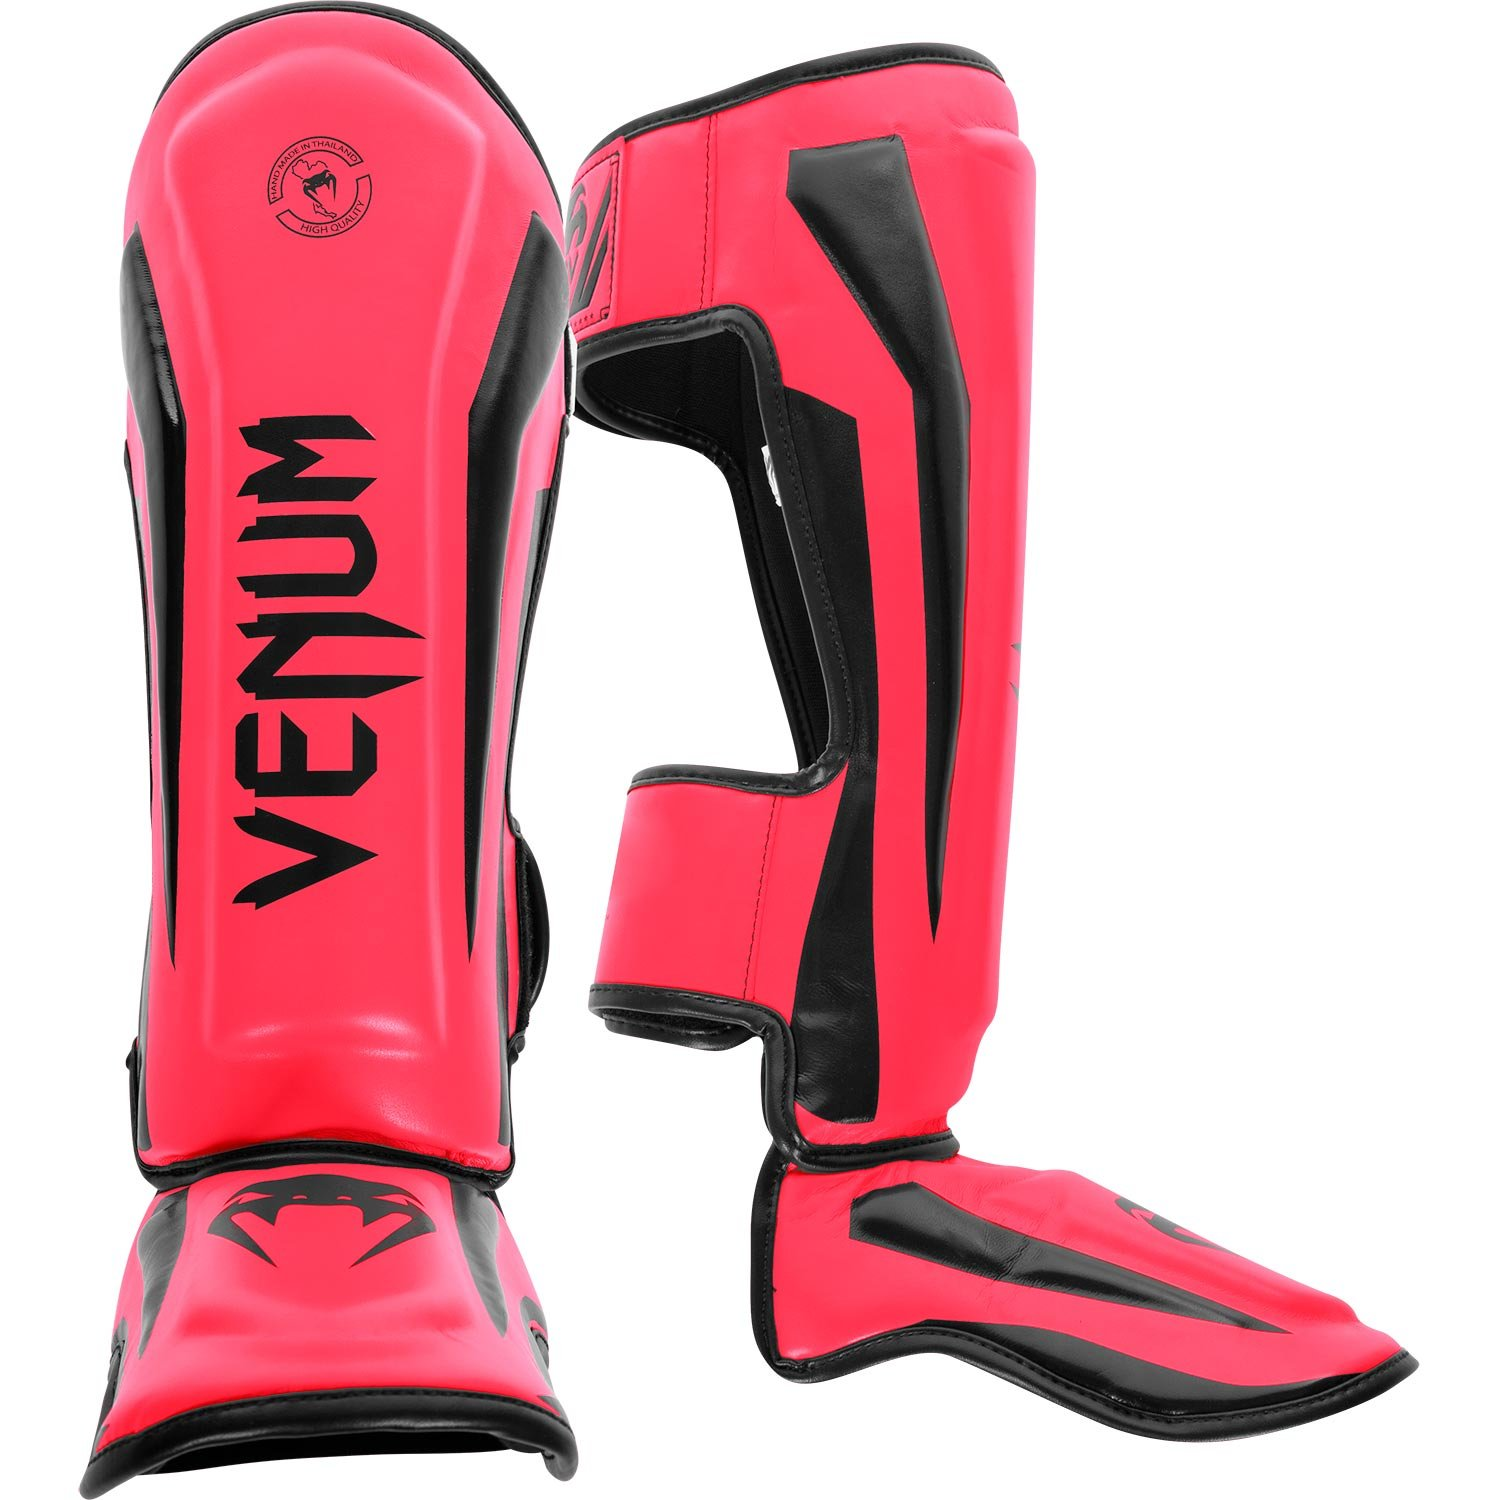 Best Top King Shin Guards - Venum Shinguards Standup Elite